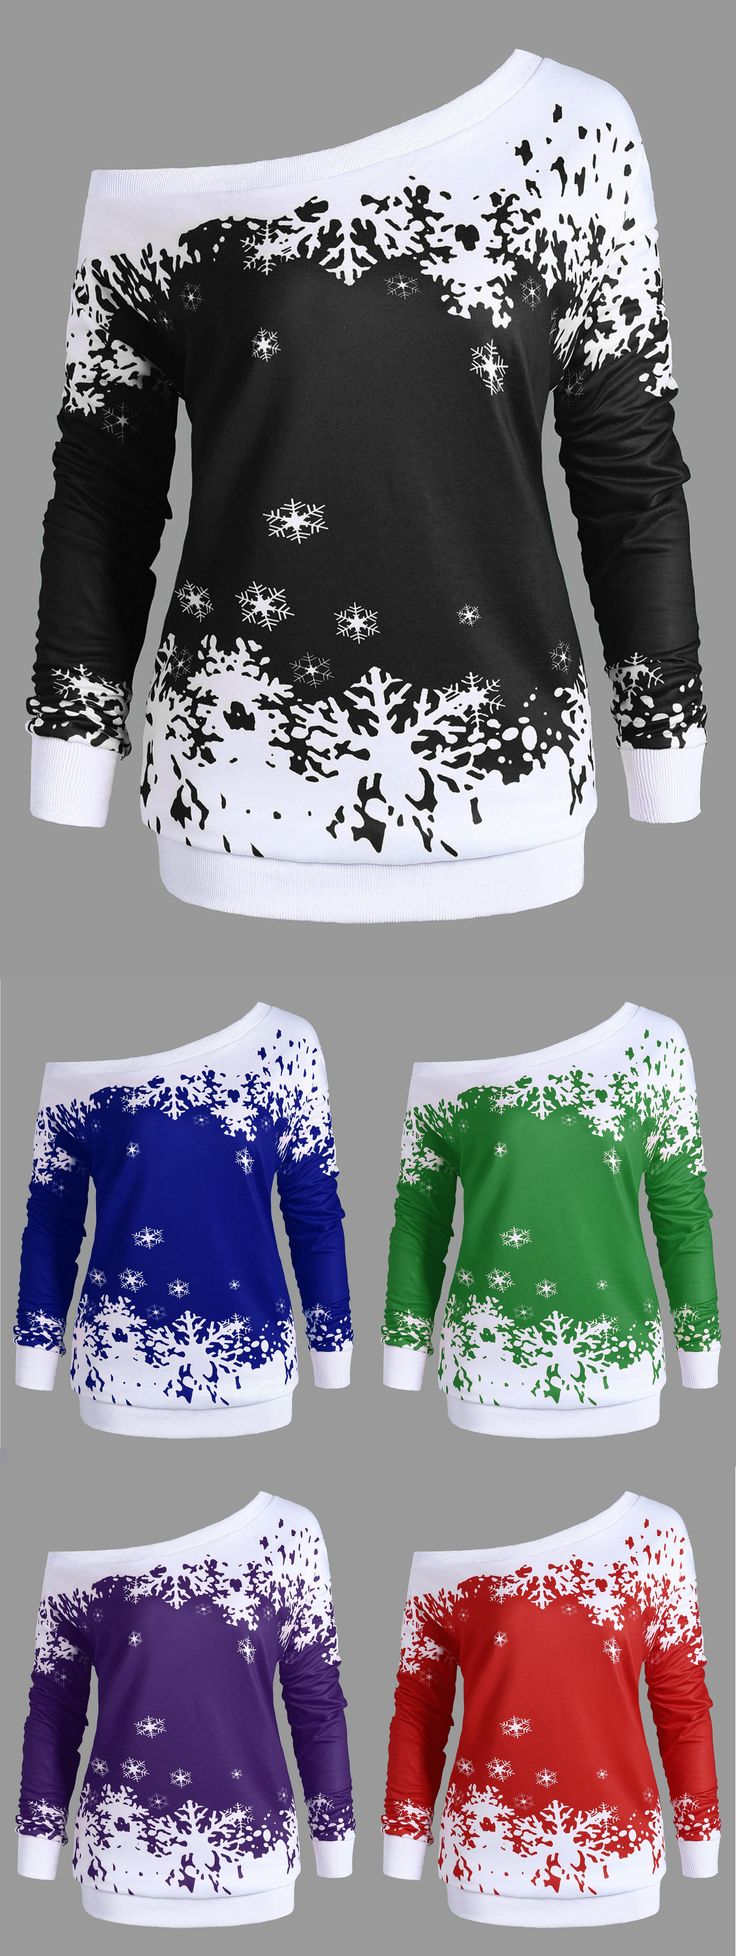 $12.66,Plus Size One Shoulder Christmas Snowflake Sweatshirt - Black 3xl | Rosewholesale,rosewholesale.com,rosewholesale.com clothing,rosewholesale plus size,rosewholesale dress plus size,rosewholesale tops, plus size,tops,snow printed,christmas,sweatshirts,hoodies,black,red,blue,green,purple | #rosewholesale #tops #plussize #sweatshirts